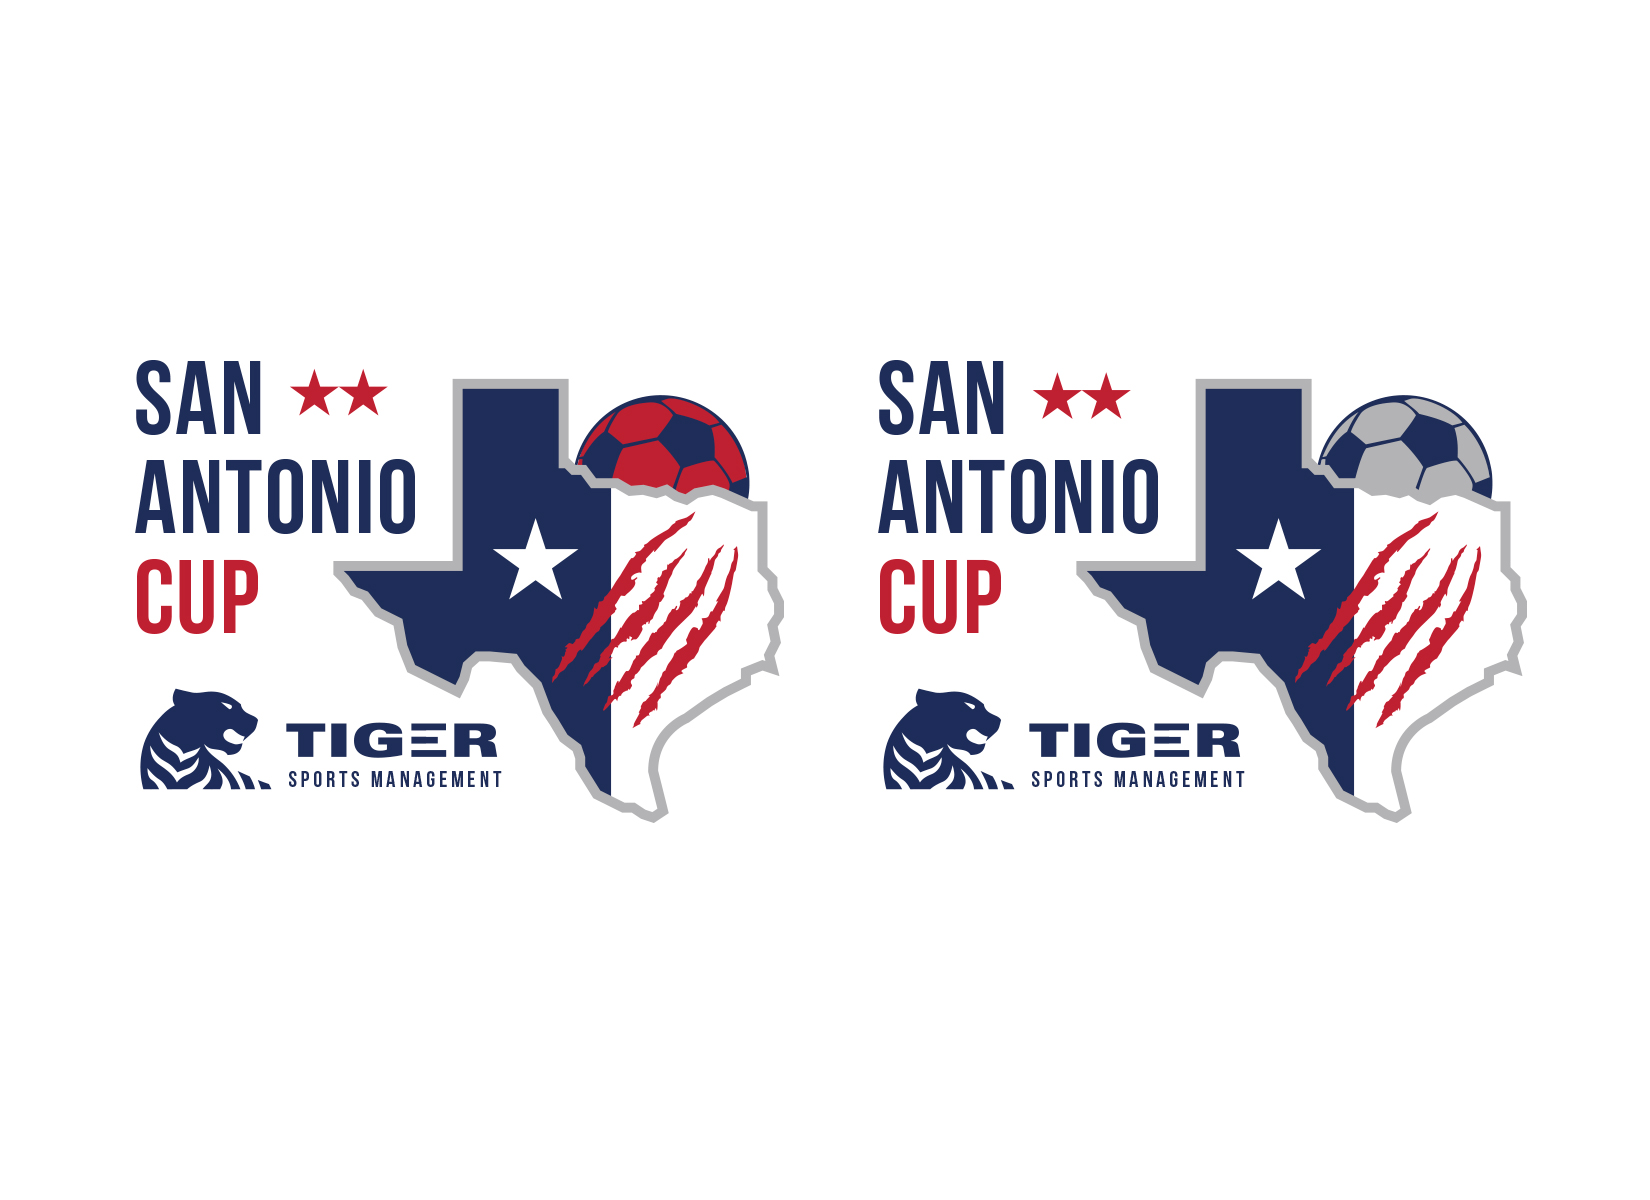 texas-soccer-tournament-logo-design-concepts-by-jordan-fretz-2.jpg